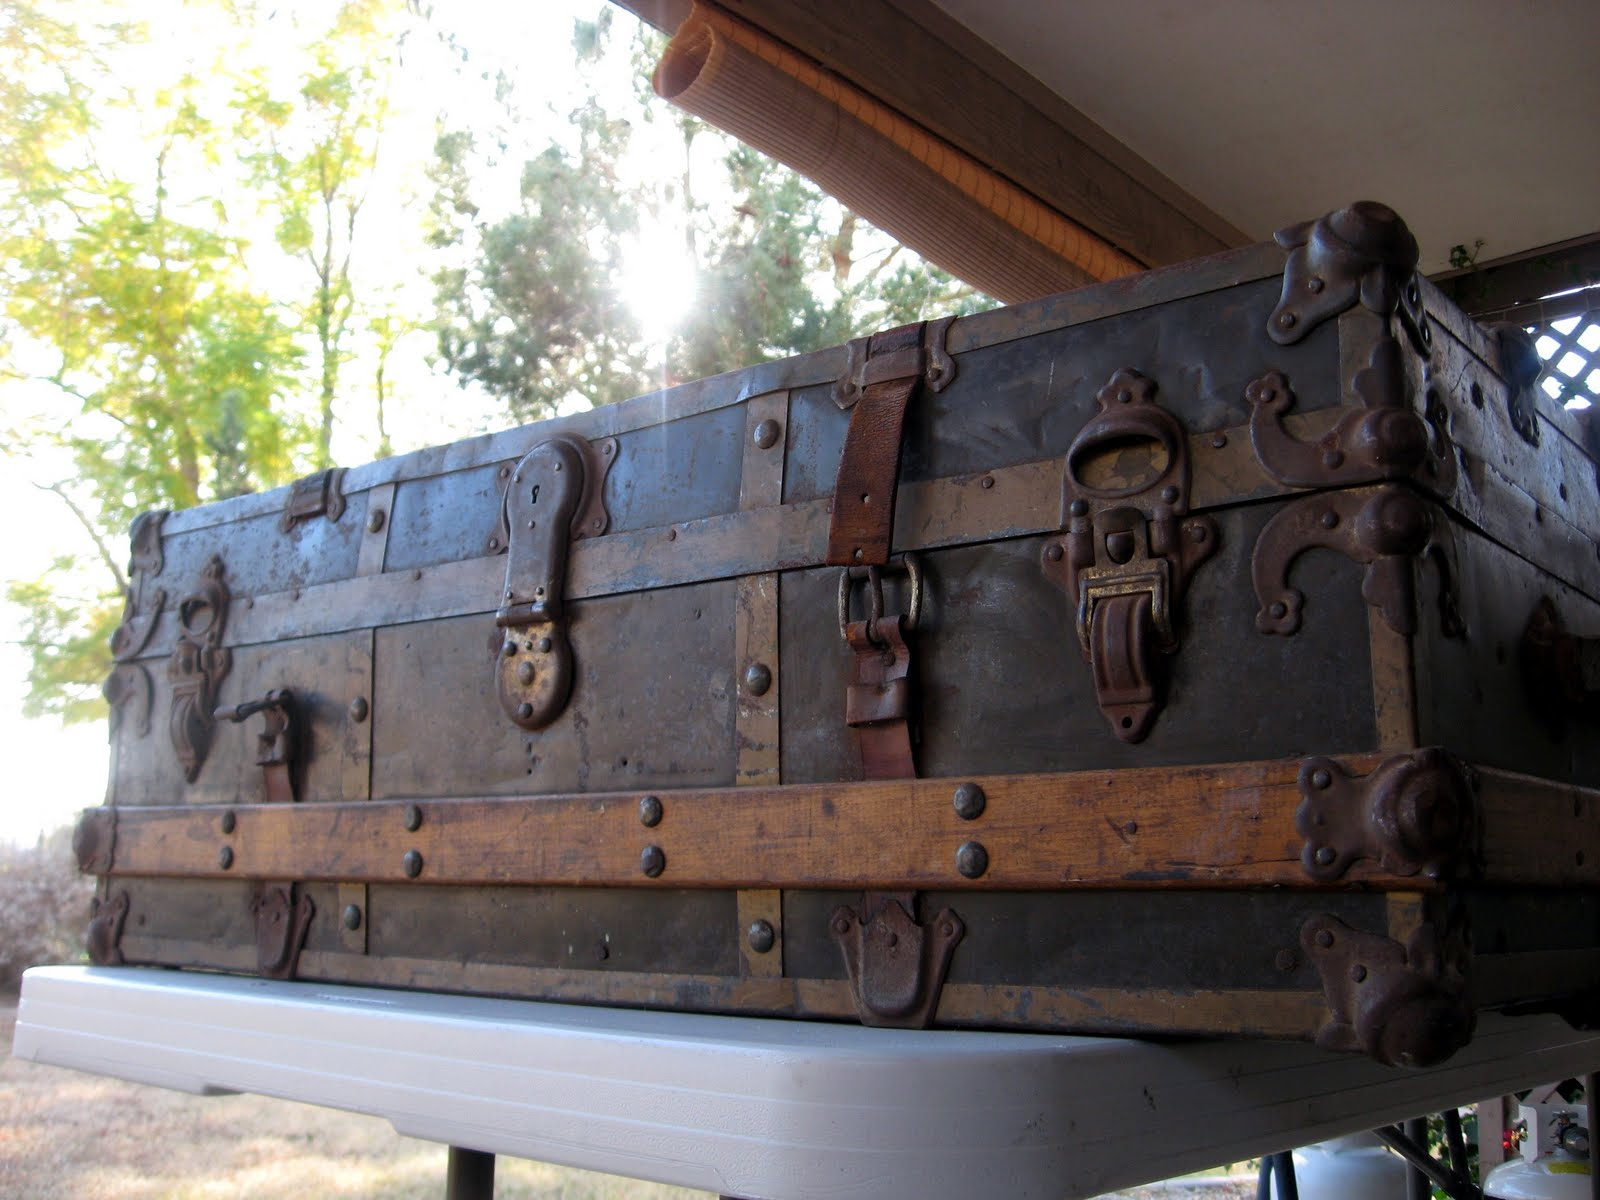 Eagle Lock Company Trunk http://bettesbungalow.blogspot.com/2012/01/trunkin-it-1800s-style.html